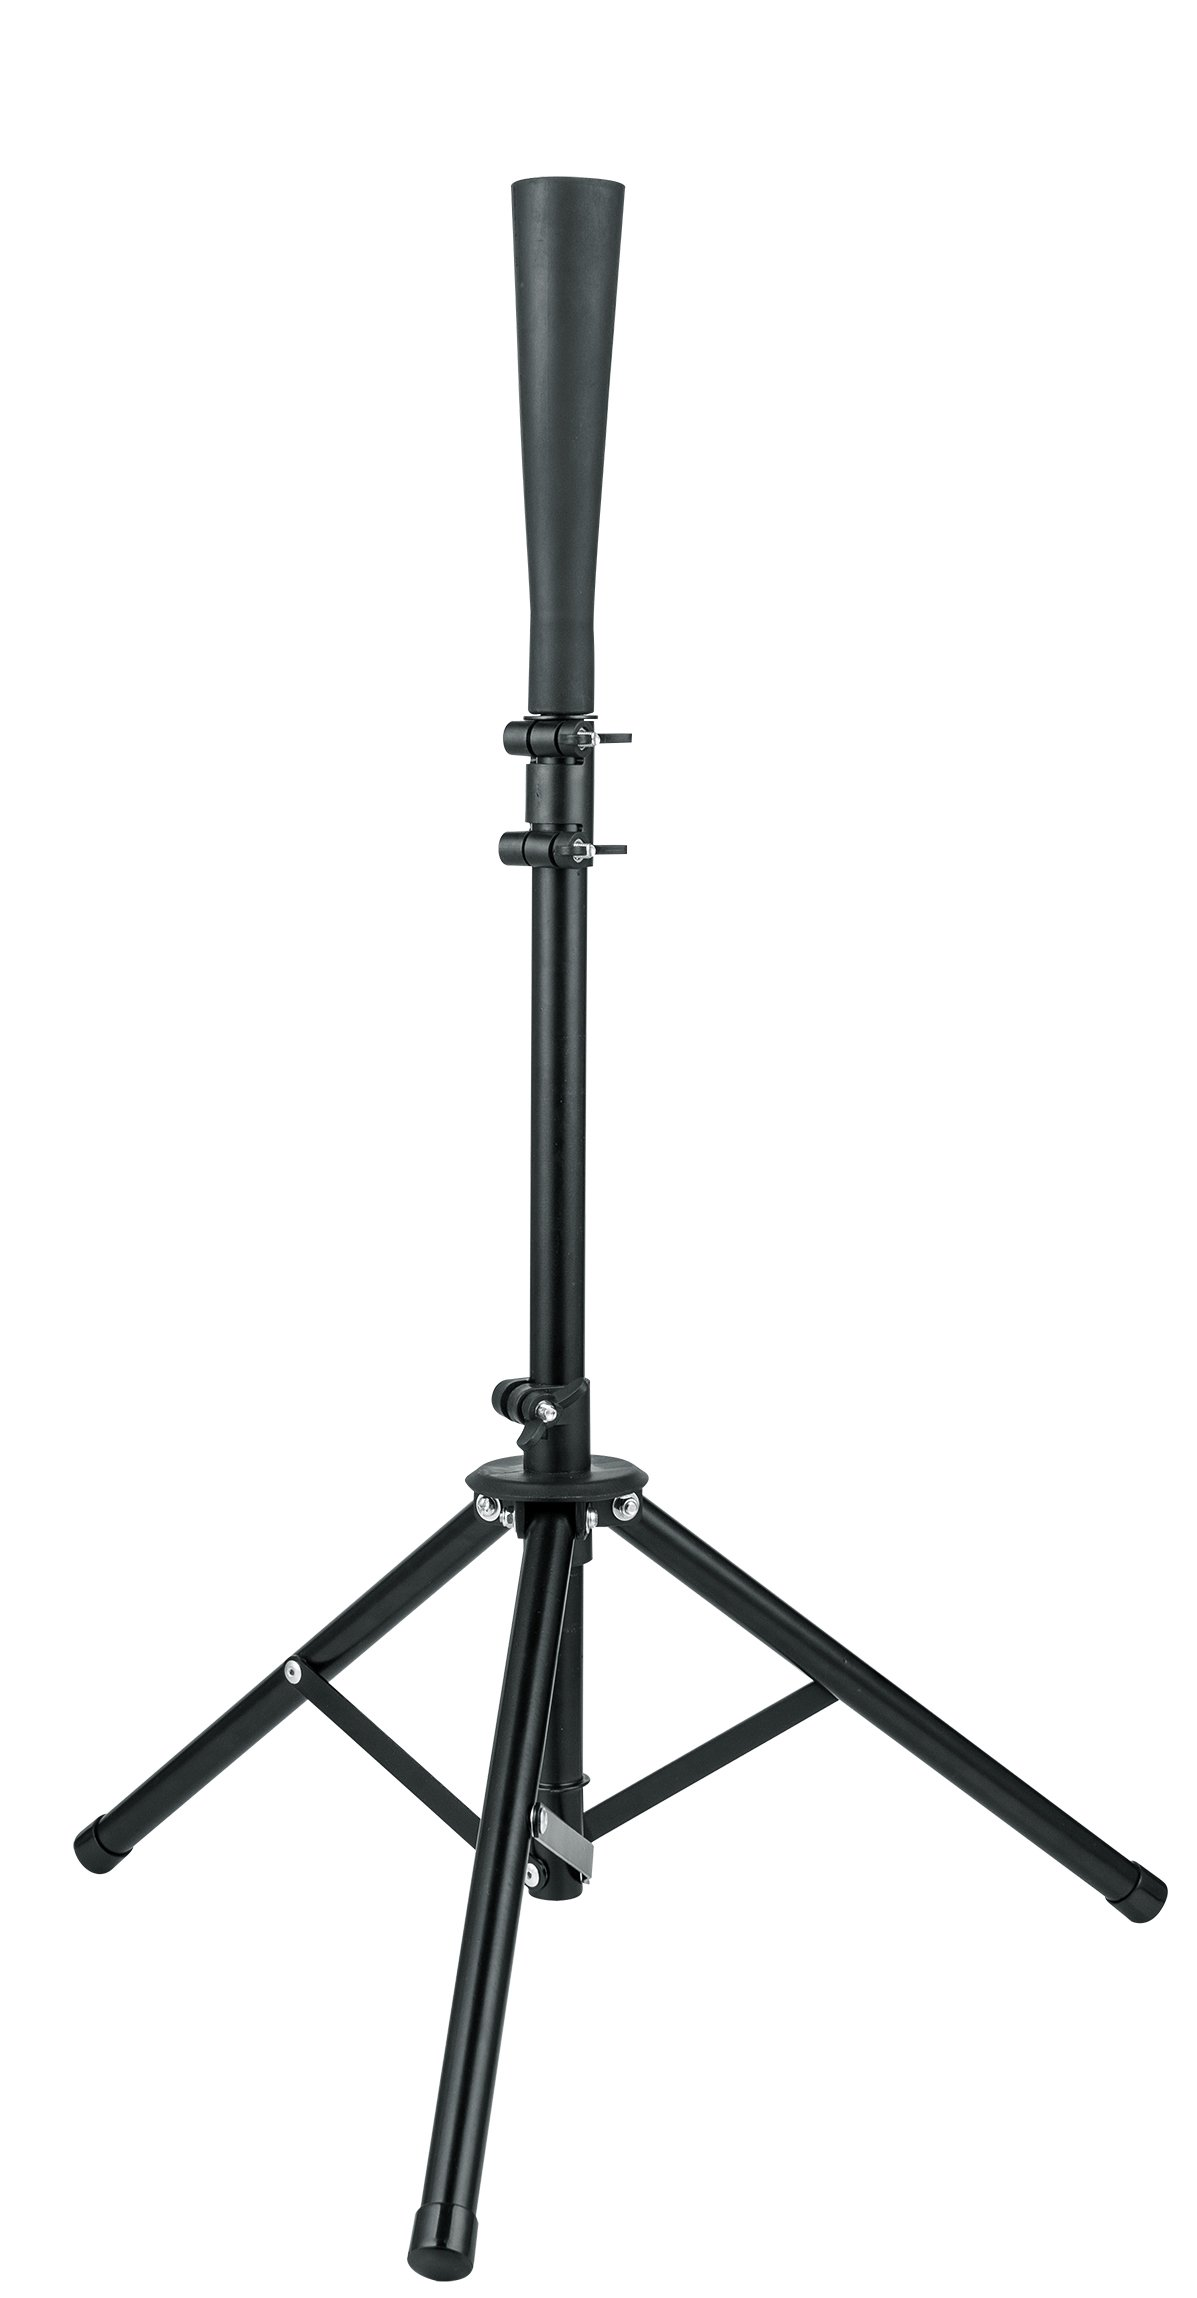 KingSports Portable Batting Tee for Baseball and Softball - Batting Practice Stand - Perfect for Hitting Drills - Will Work On Any Surface by KingSports